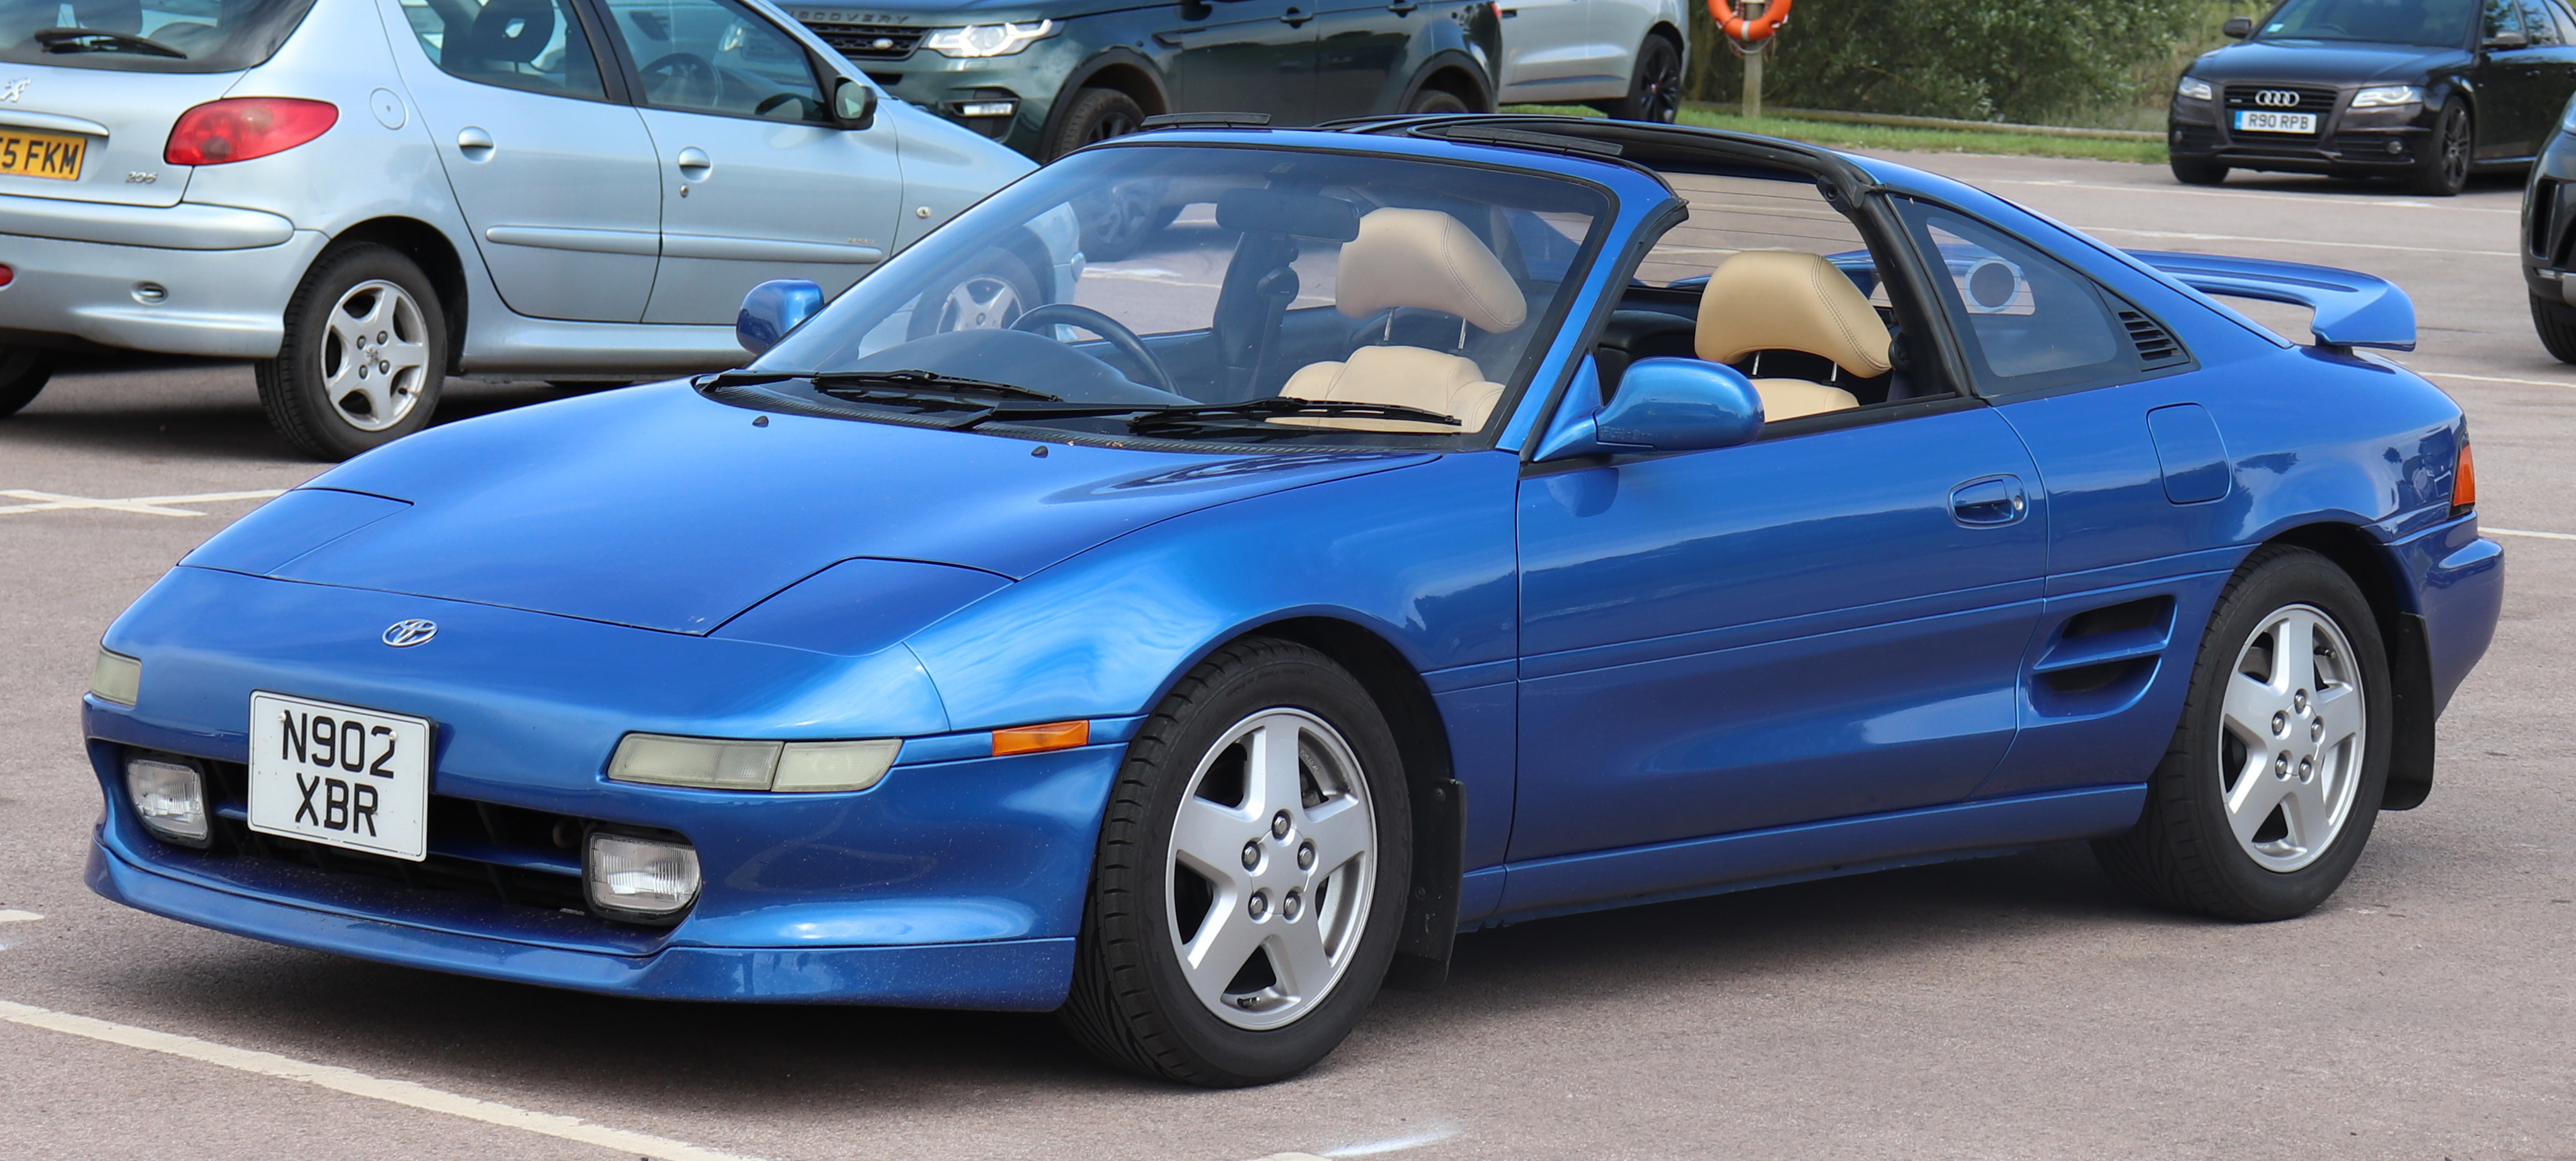 Formacar Toyota To Resurrect The Mr2 Mini Roadster Series On All